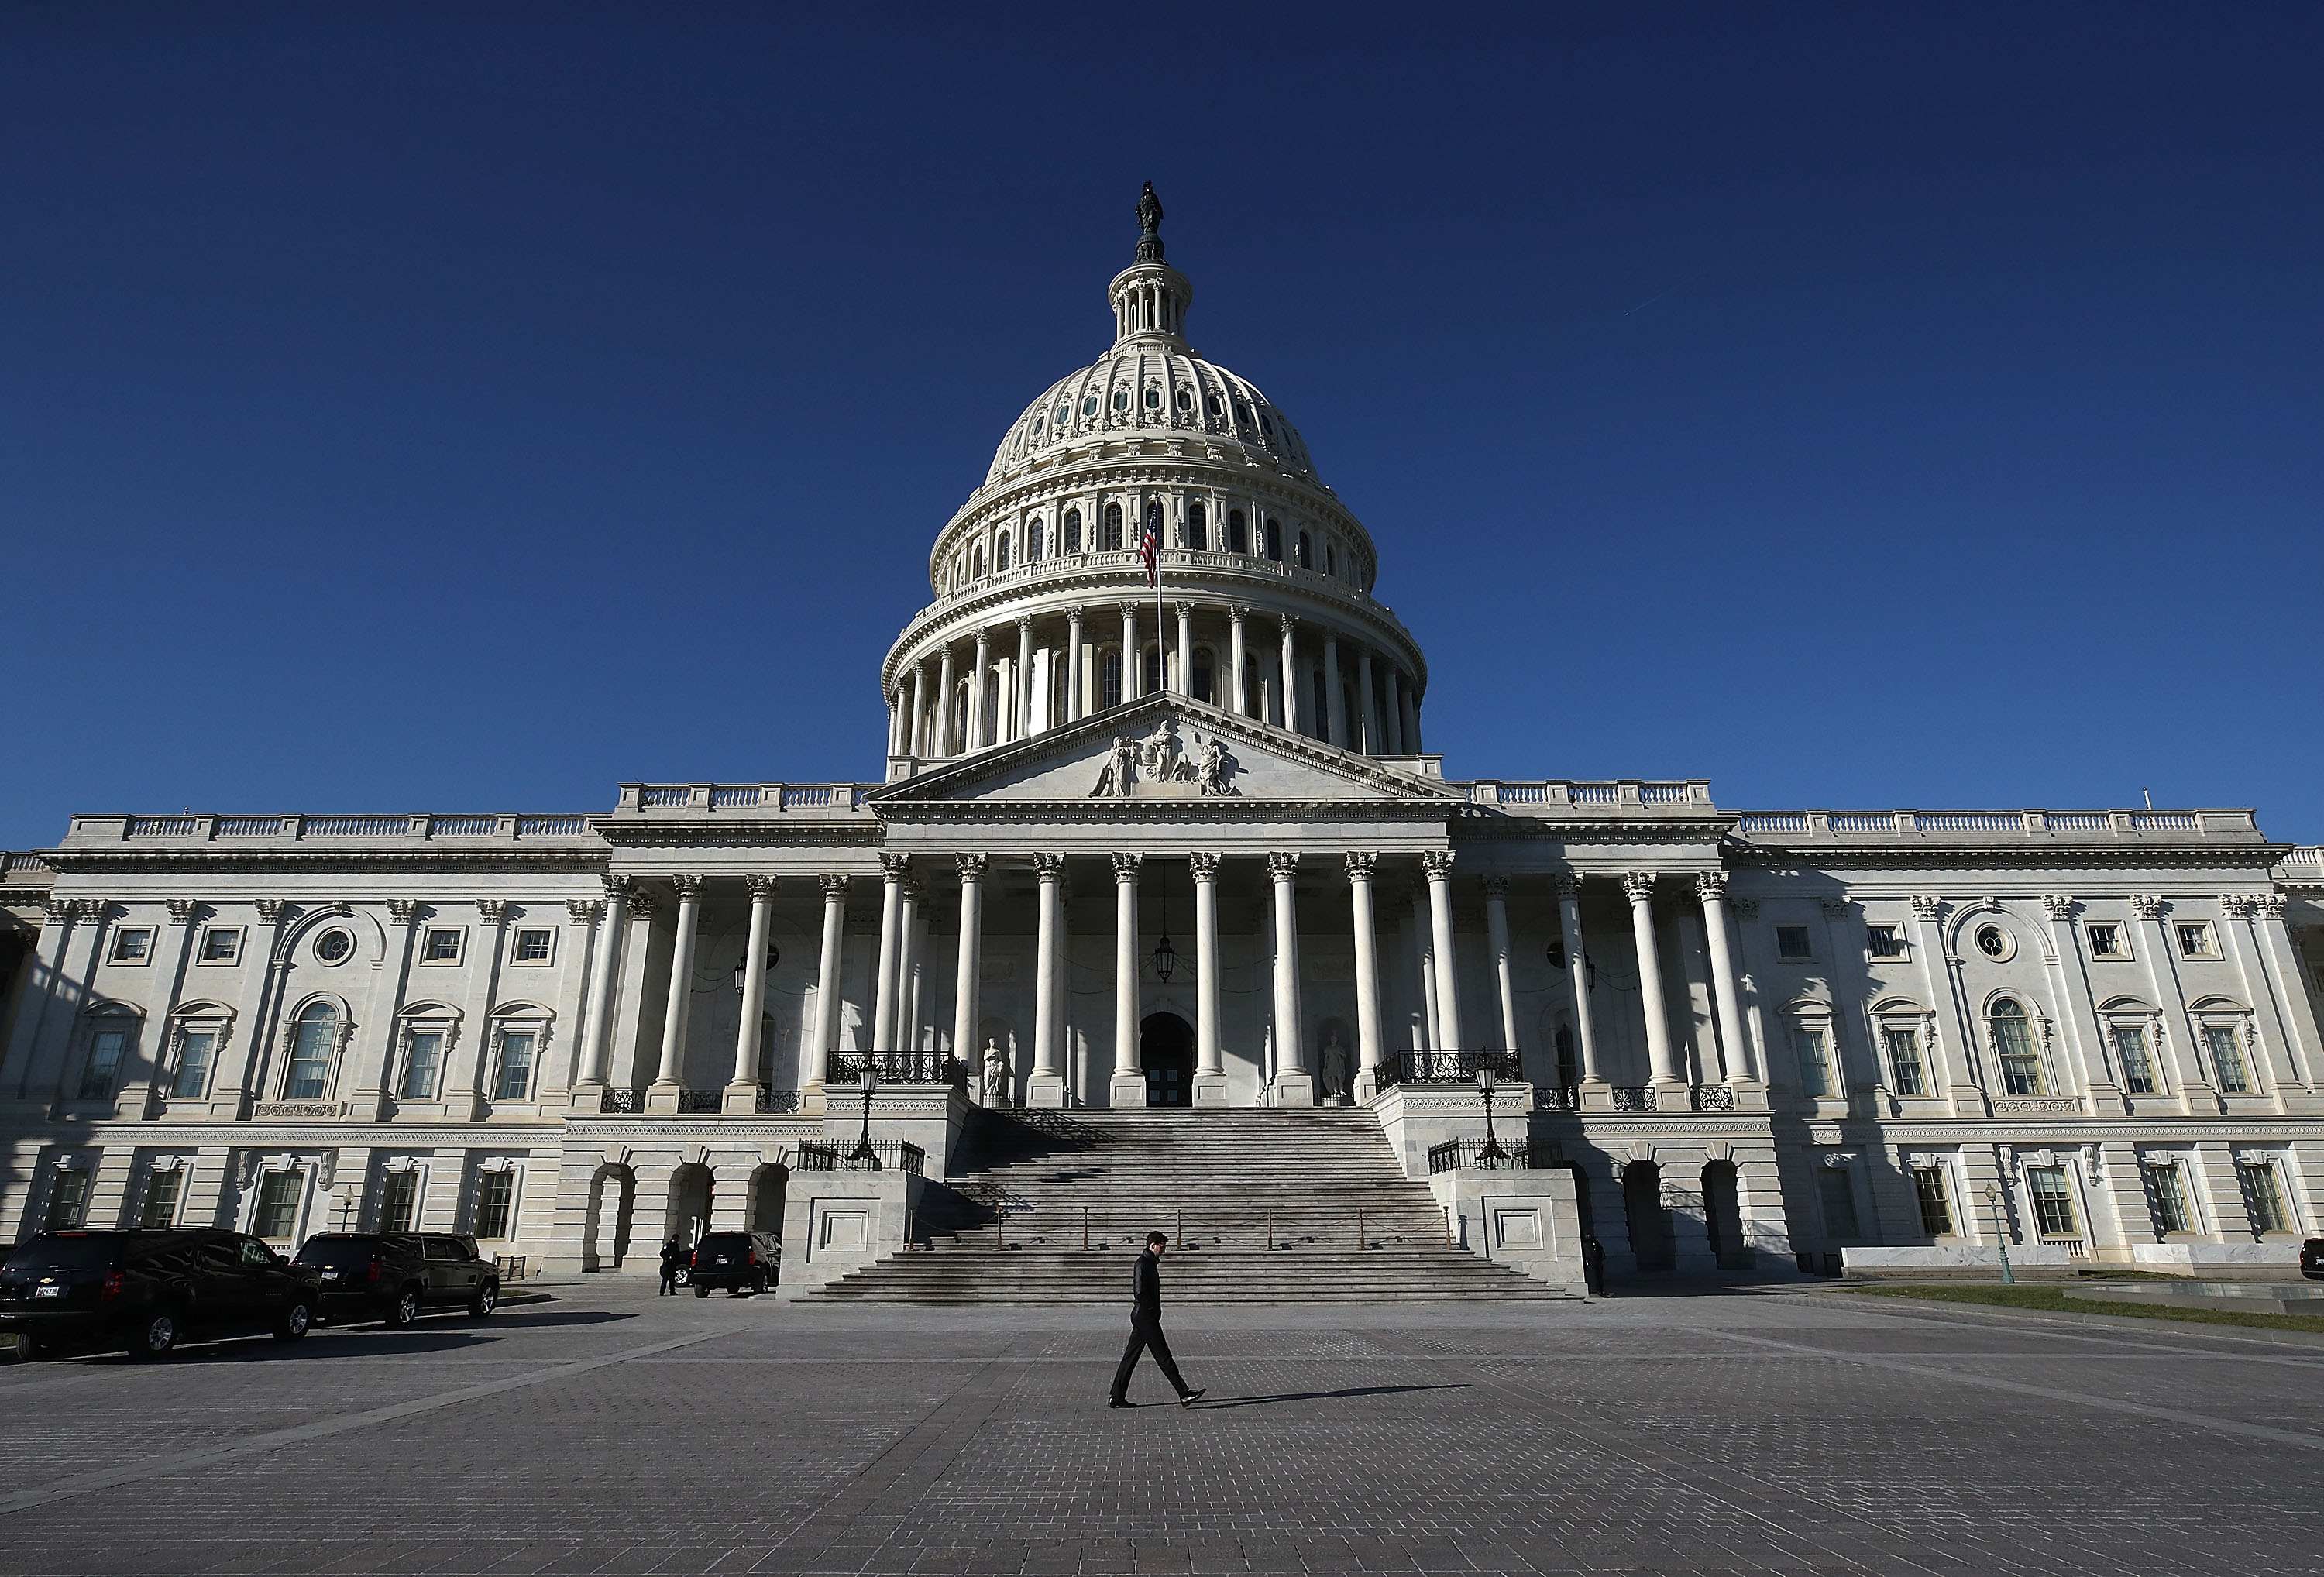 A pedestrian walks past the U.S. Capitol as congressional lawmakers work on a deal to fund the government and avert a shutdown by midnight Friday, on December 21, 2017 in Washington, DC.